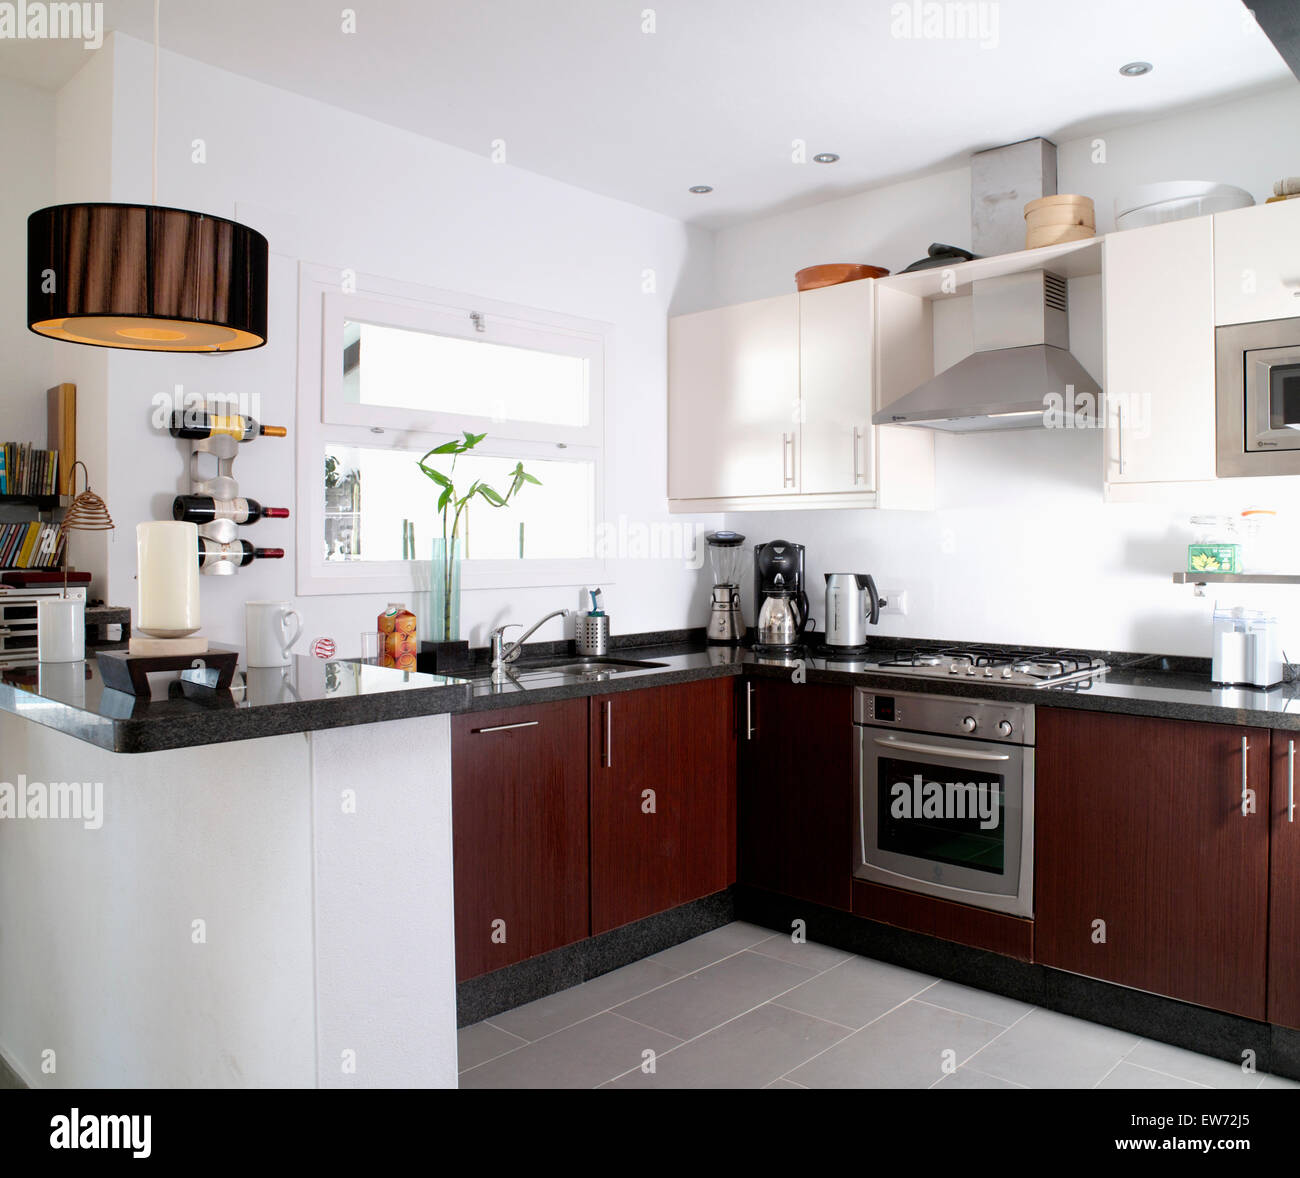 Small Kitchen Units Stock Photos & Small Kitchen Units